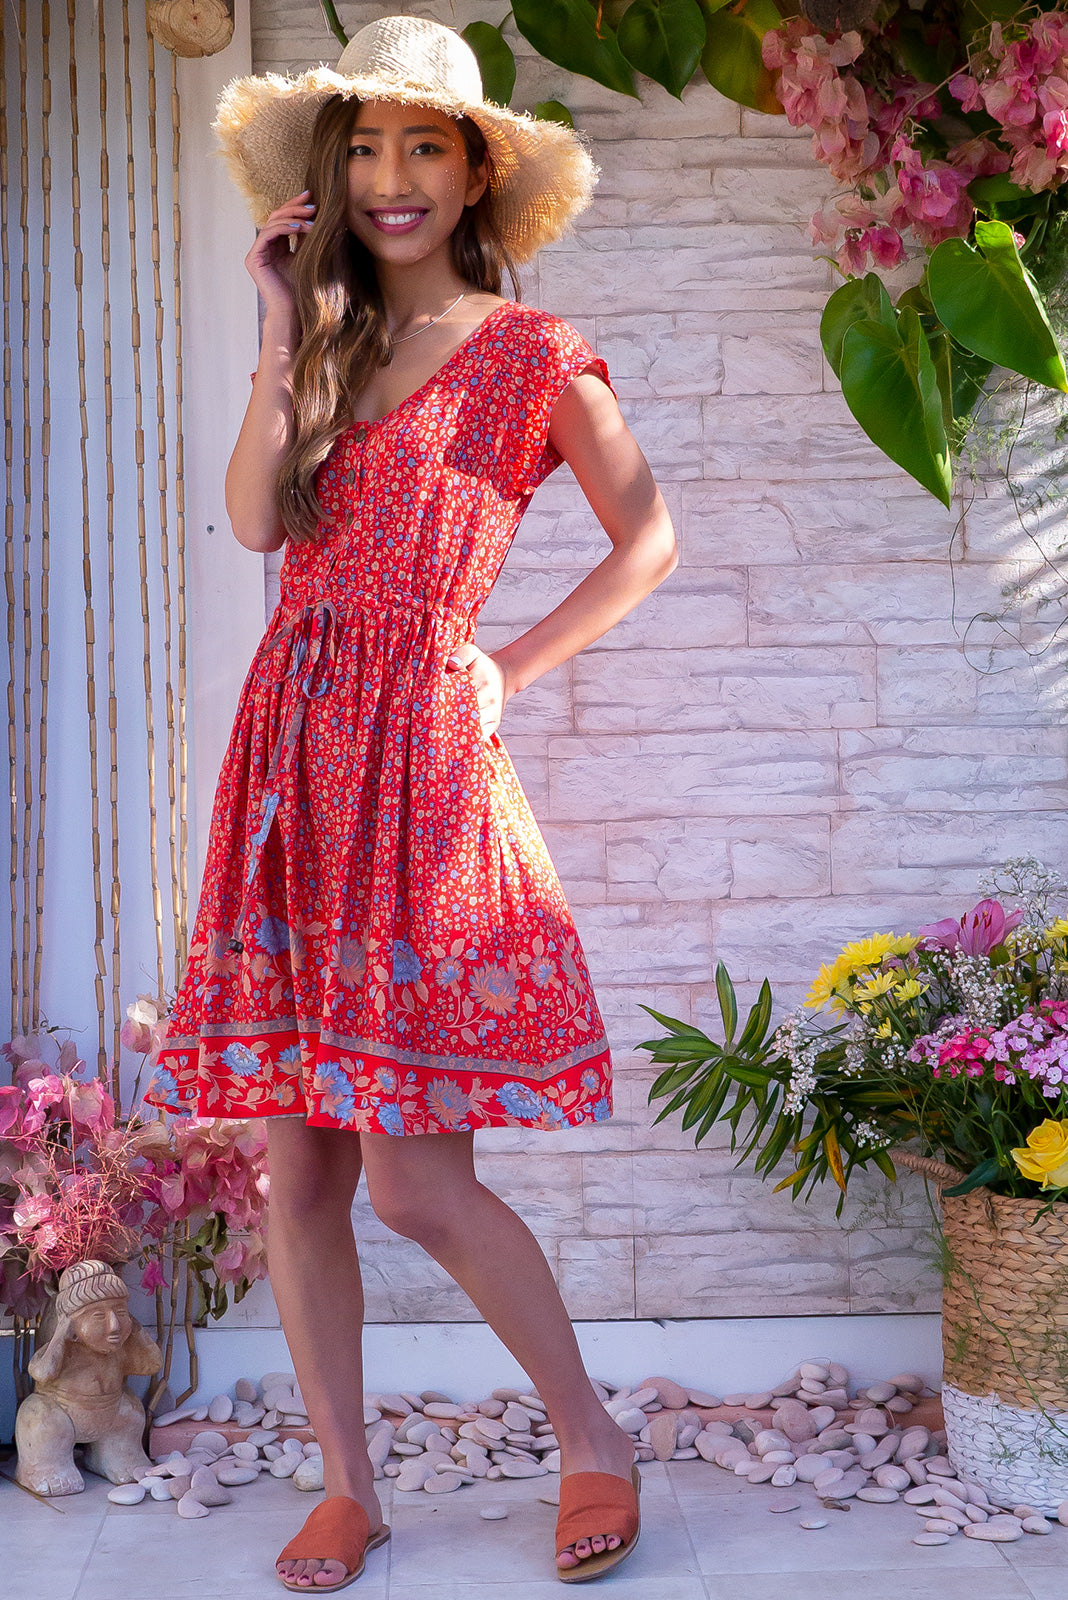 Juniper Folklore Red Dress - Short dress in a lovely red base, vintage print on rayon fabric. Includes drawstring waist, side pockets, functional button down front to waist, cap sleeves.